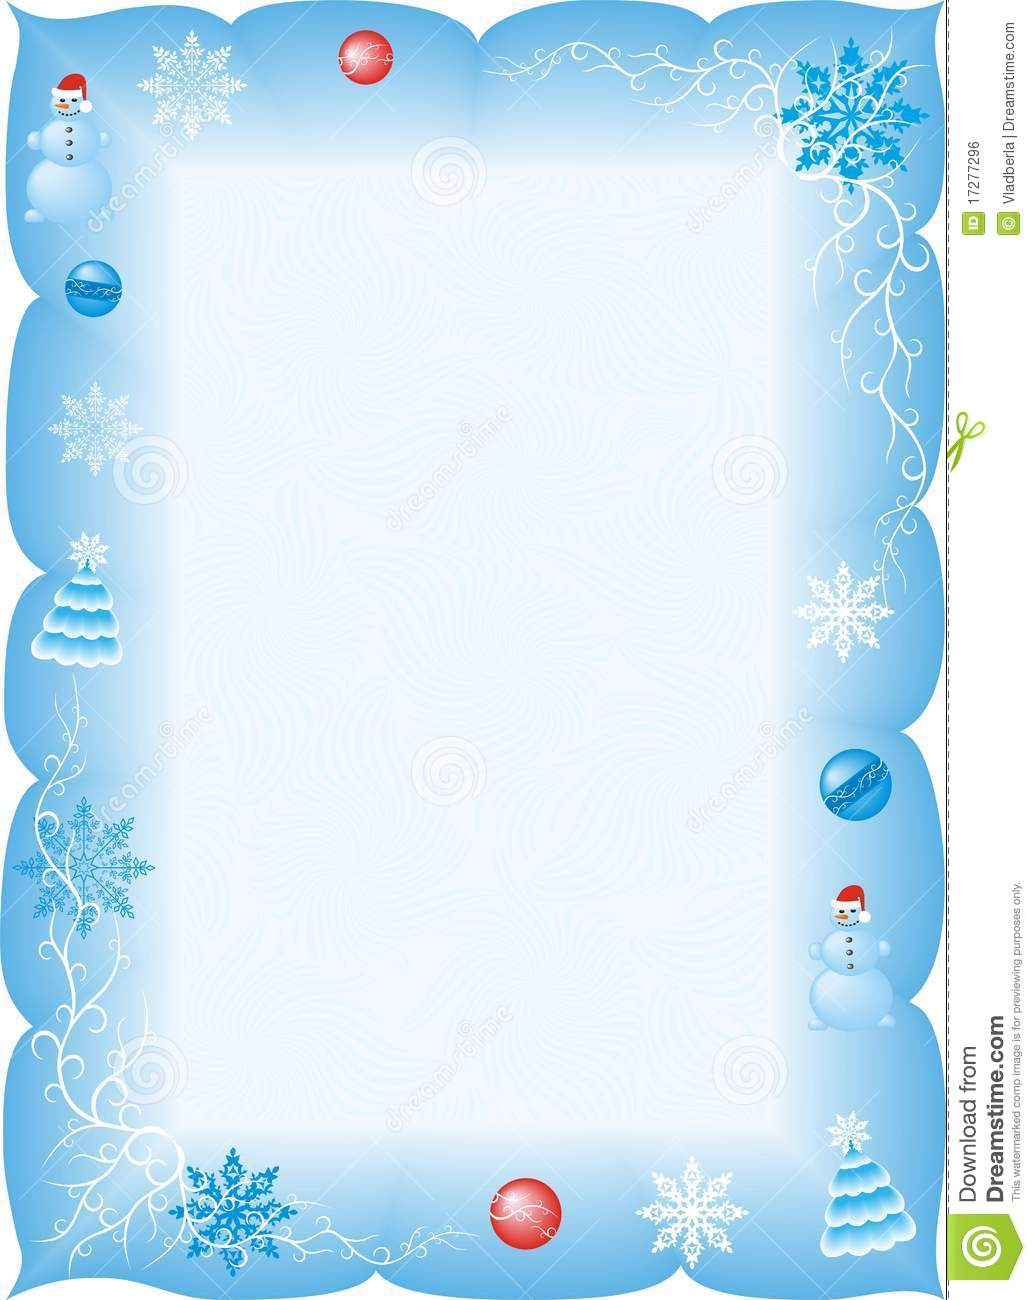 Frame with snowmen, Christmas decoration and frosty curls.